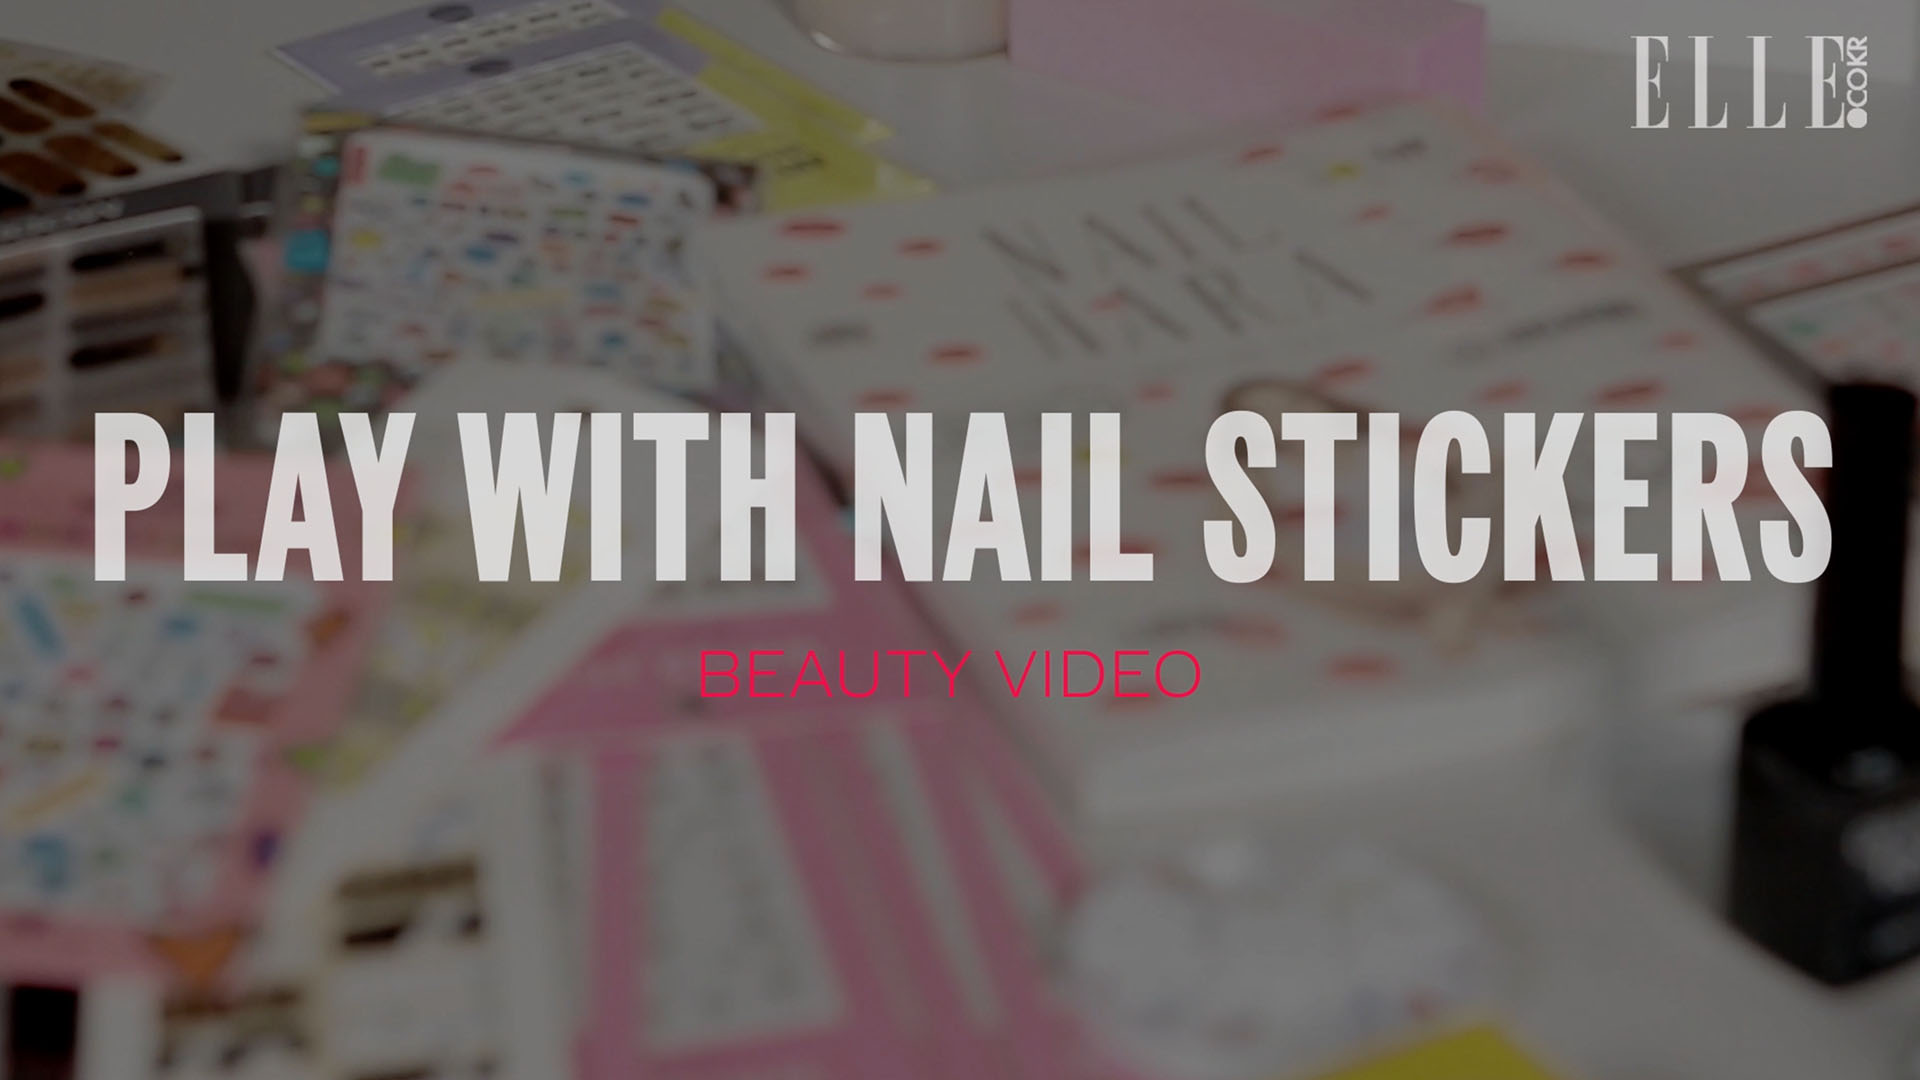 PLAY WITH NAIL STICKERS